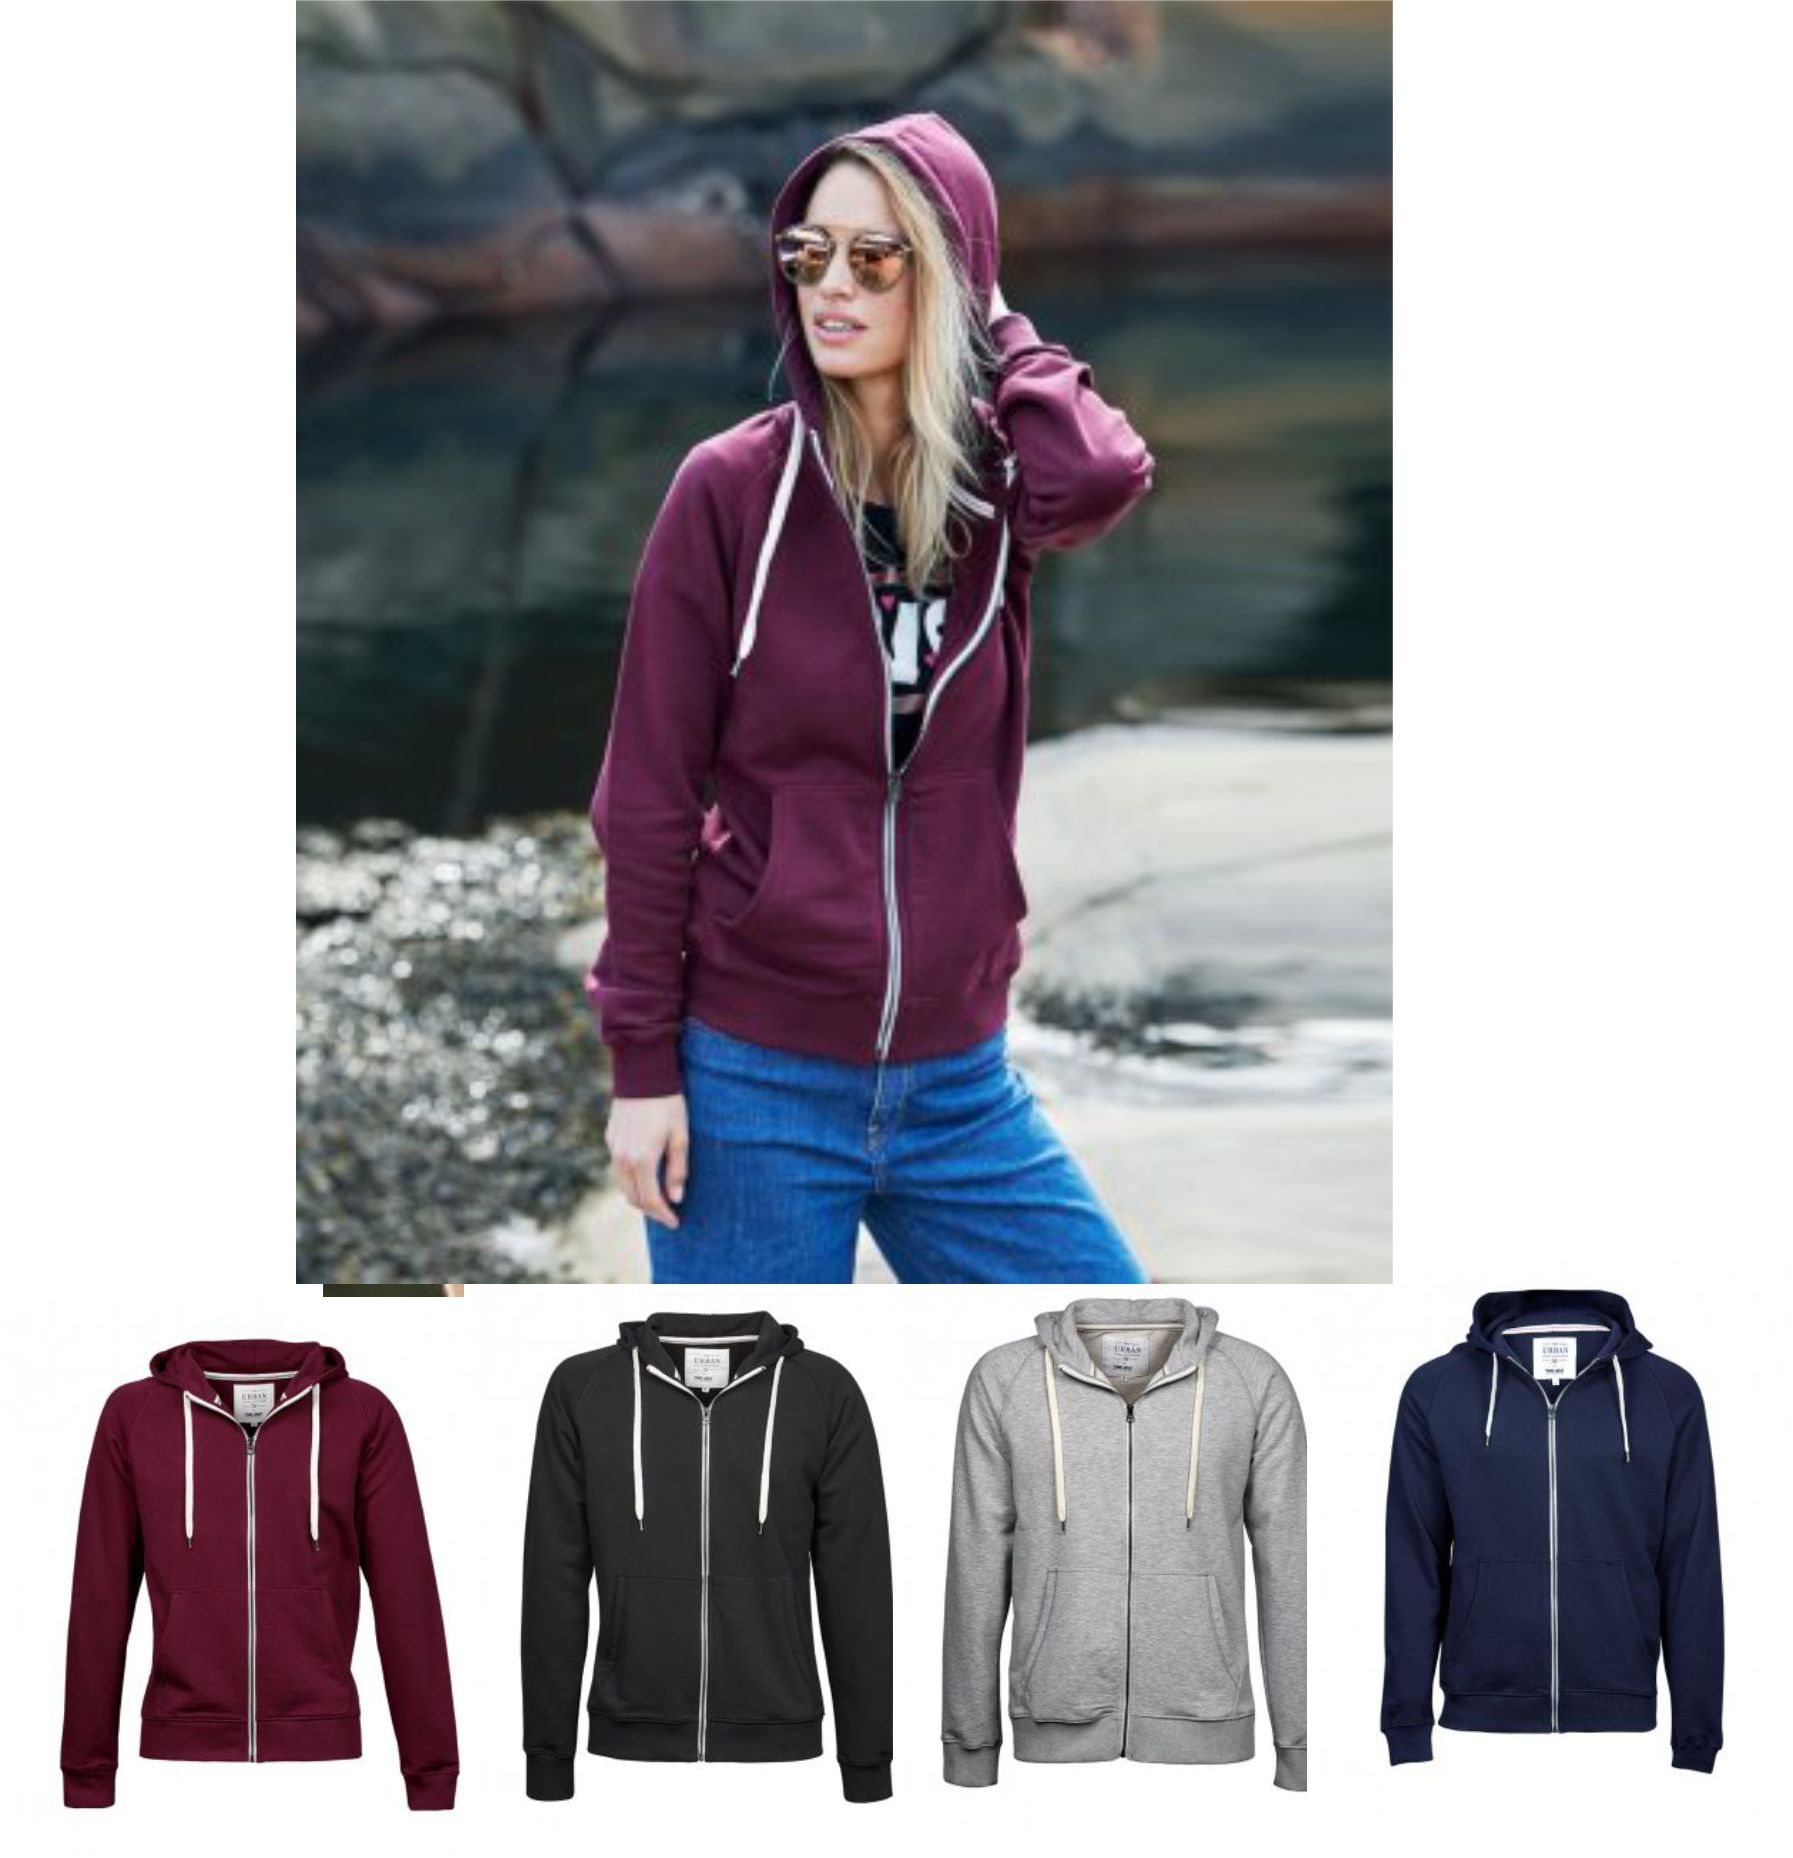 Tee Jays 5403 Ladies Urban Zip Hoodie